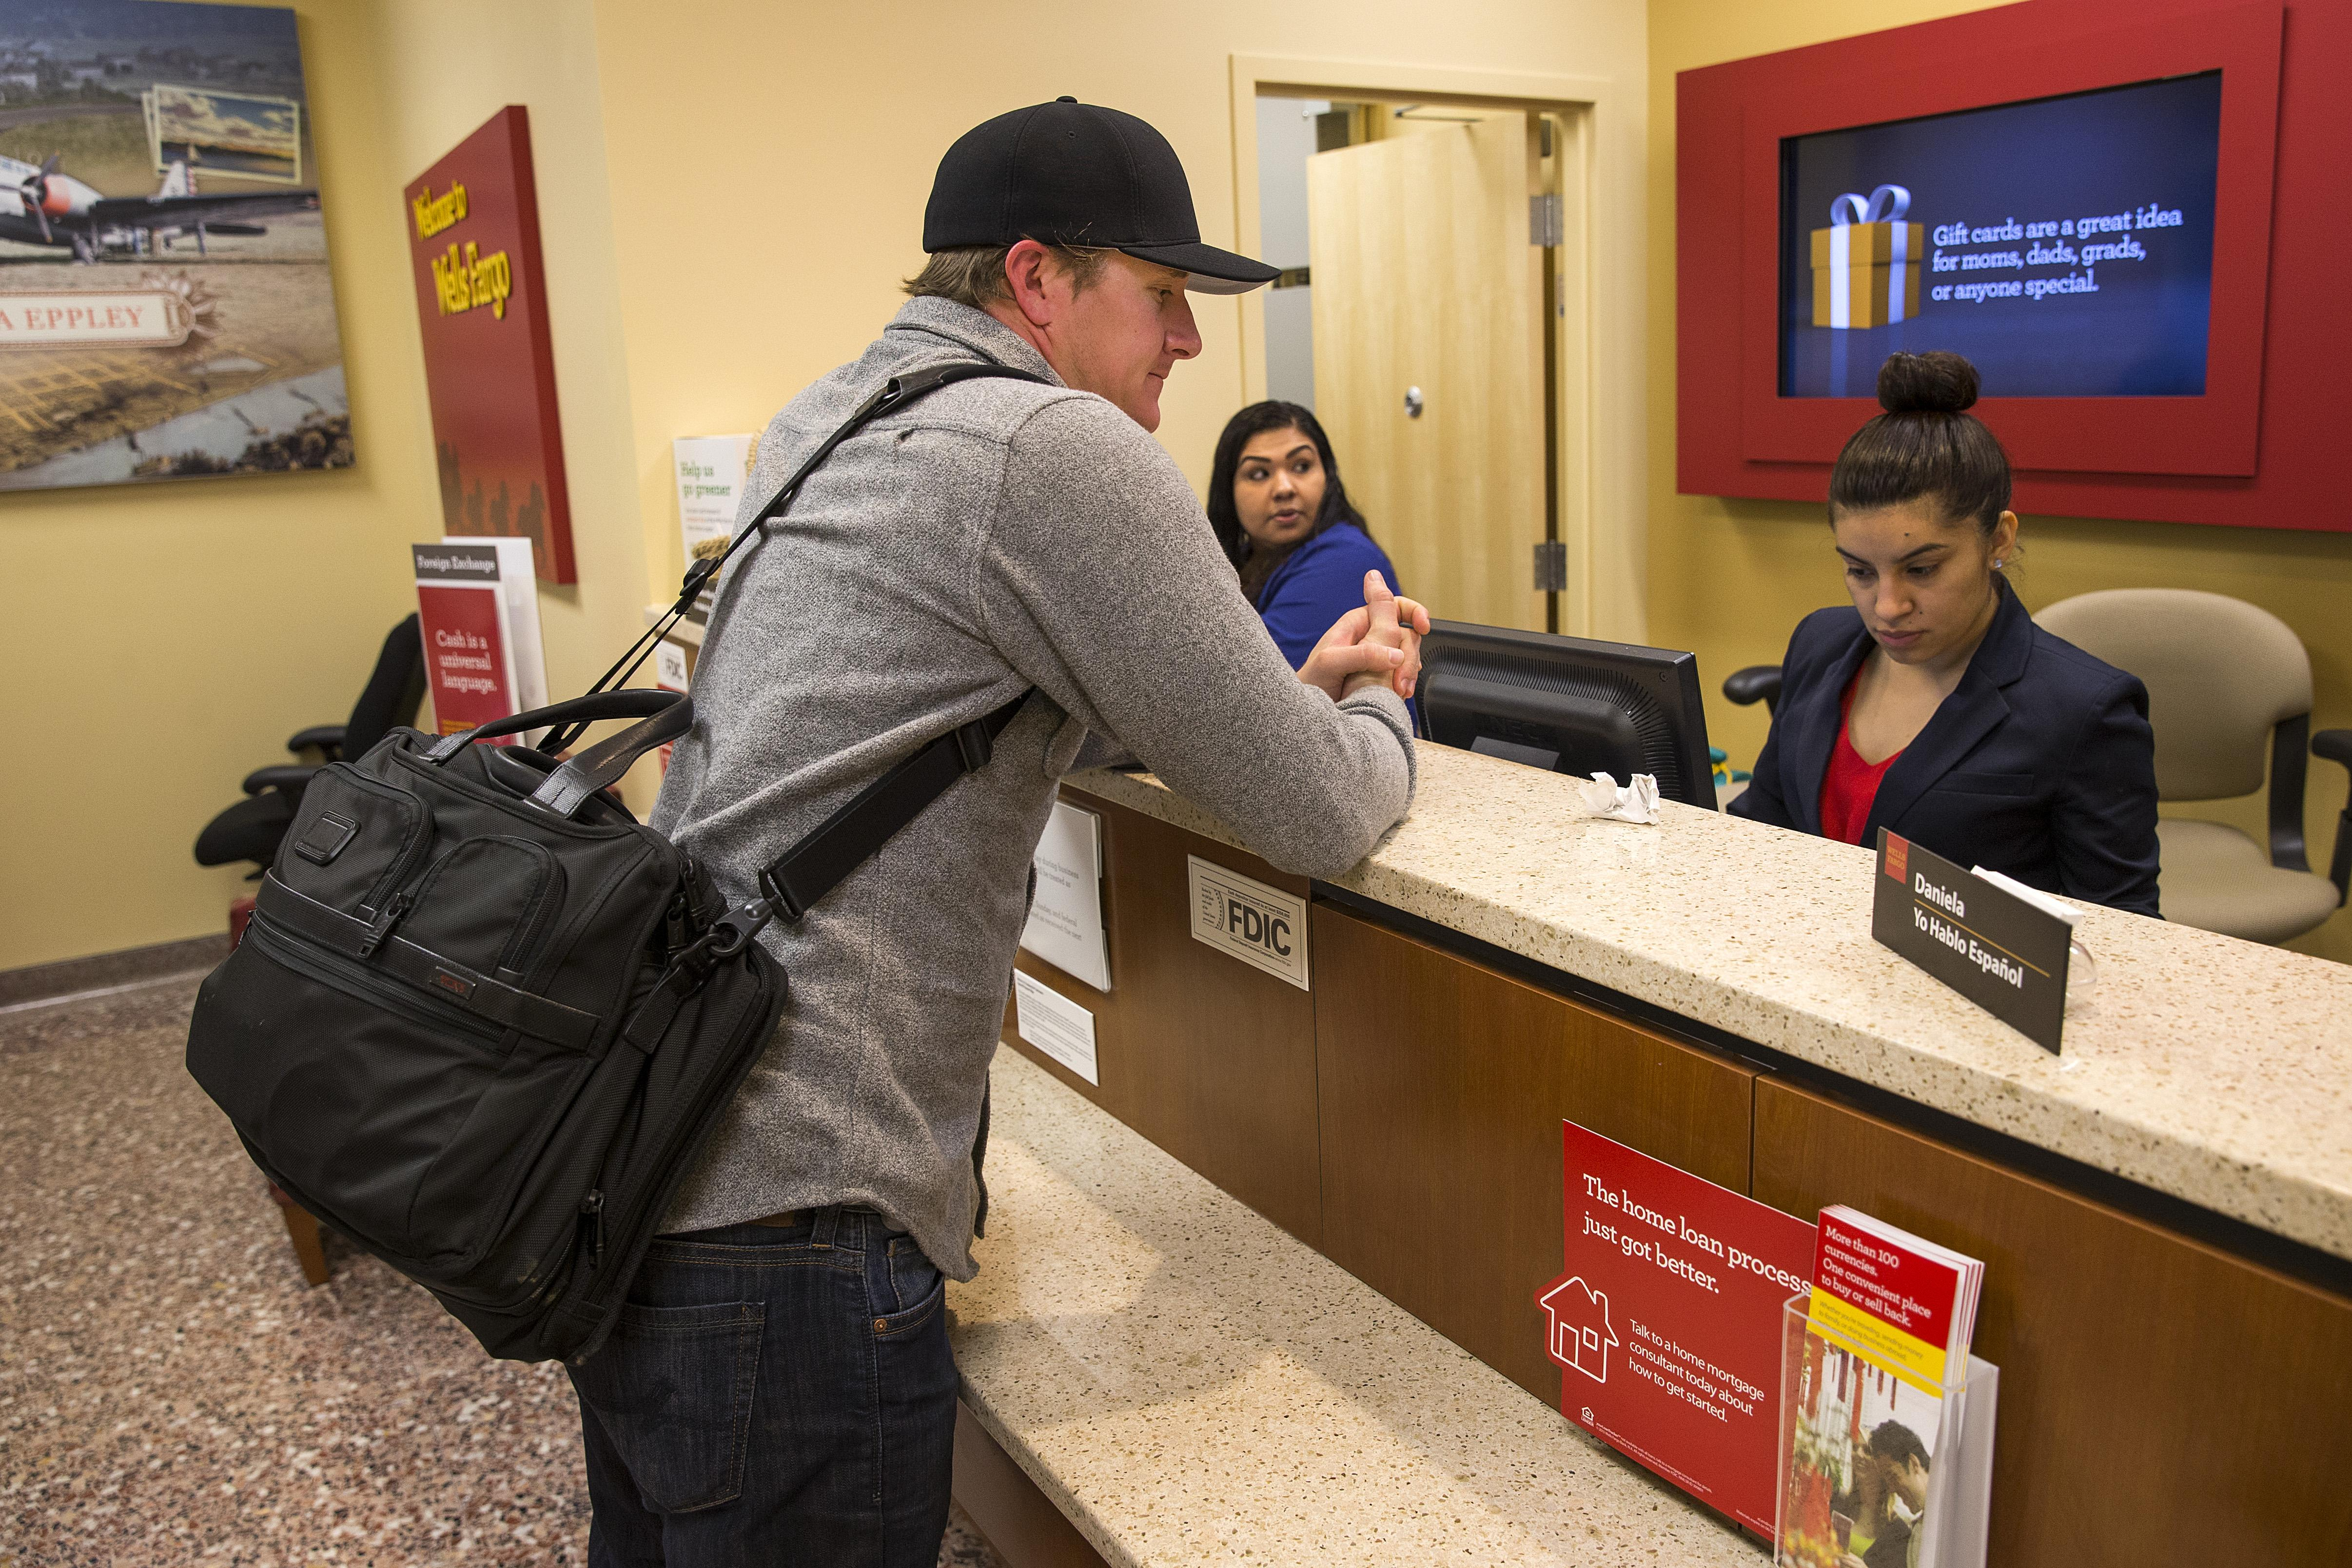 wells fargo s new atms does more than dispense cash washington times